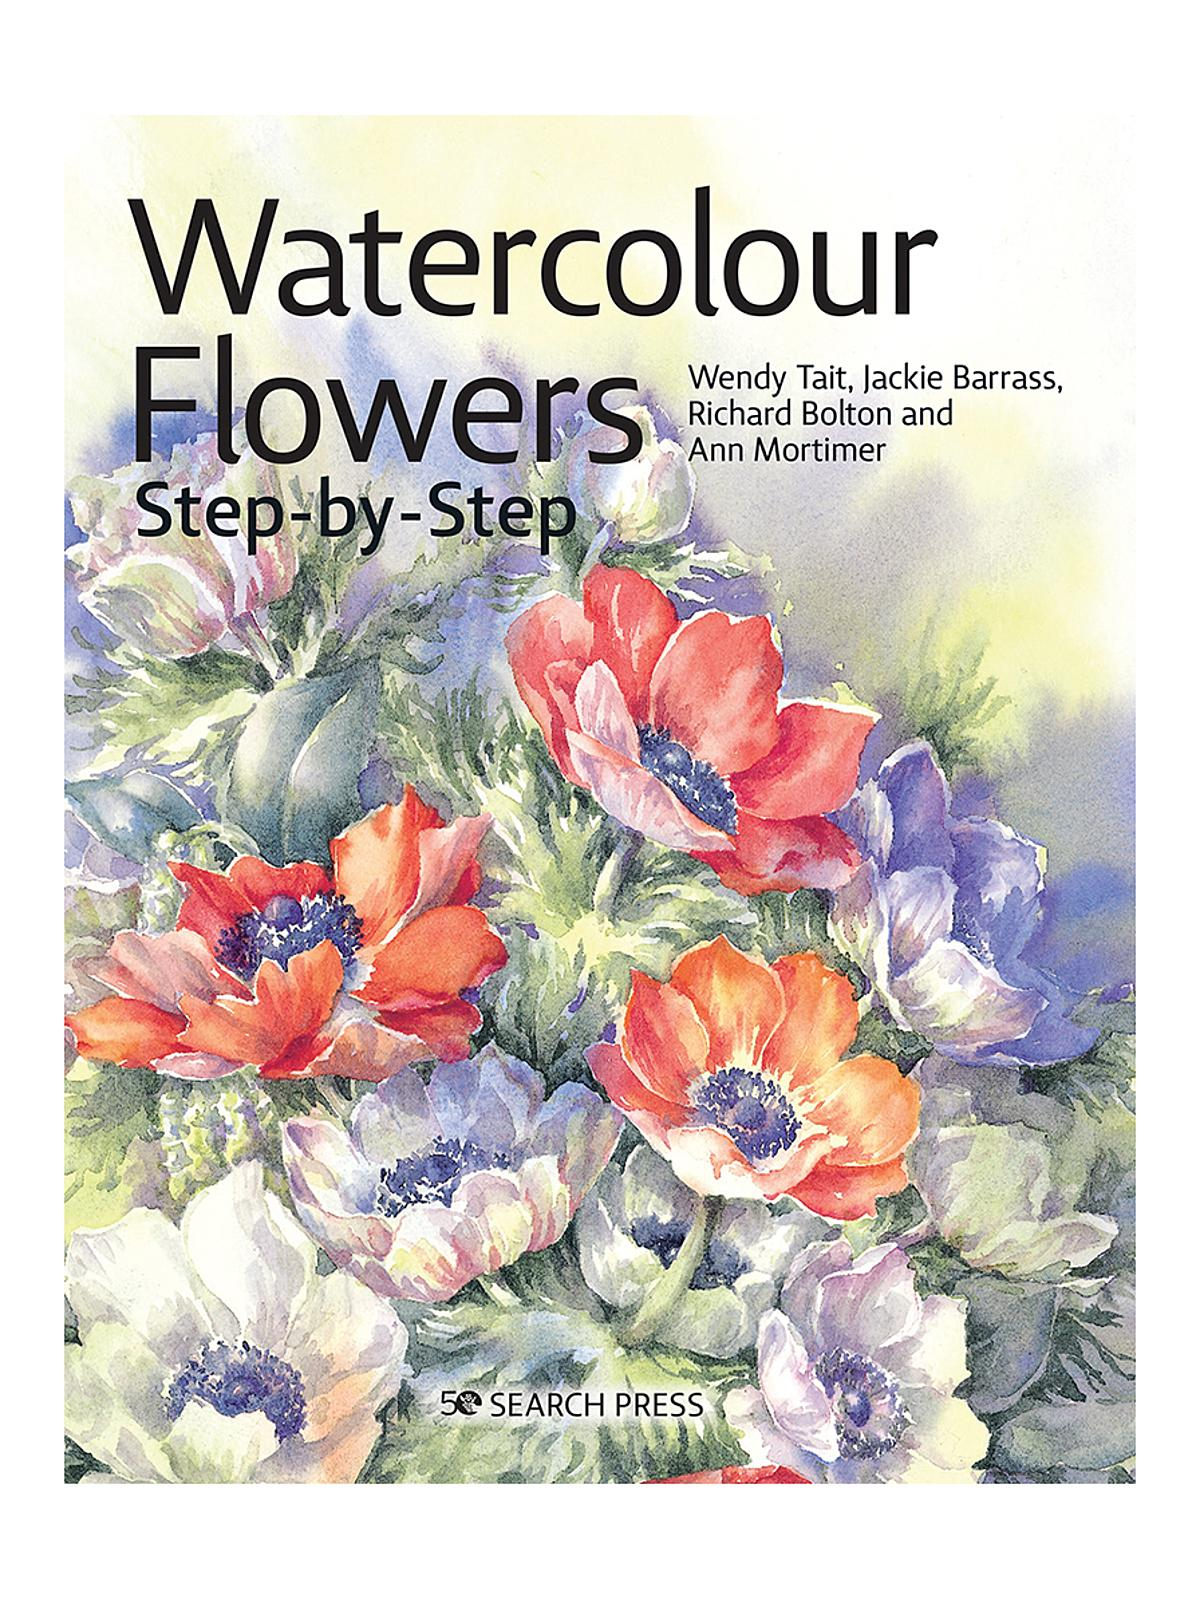 Search Press - Watercolour Flowers Step-by-Step